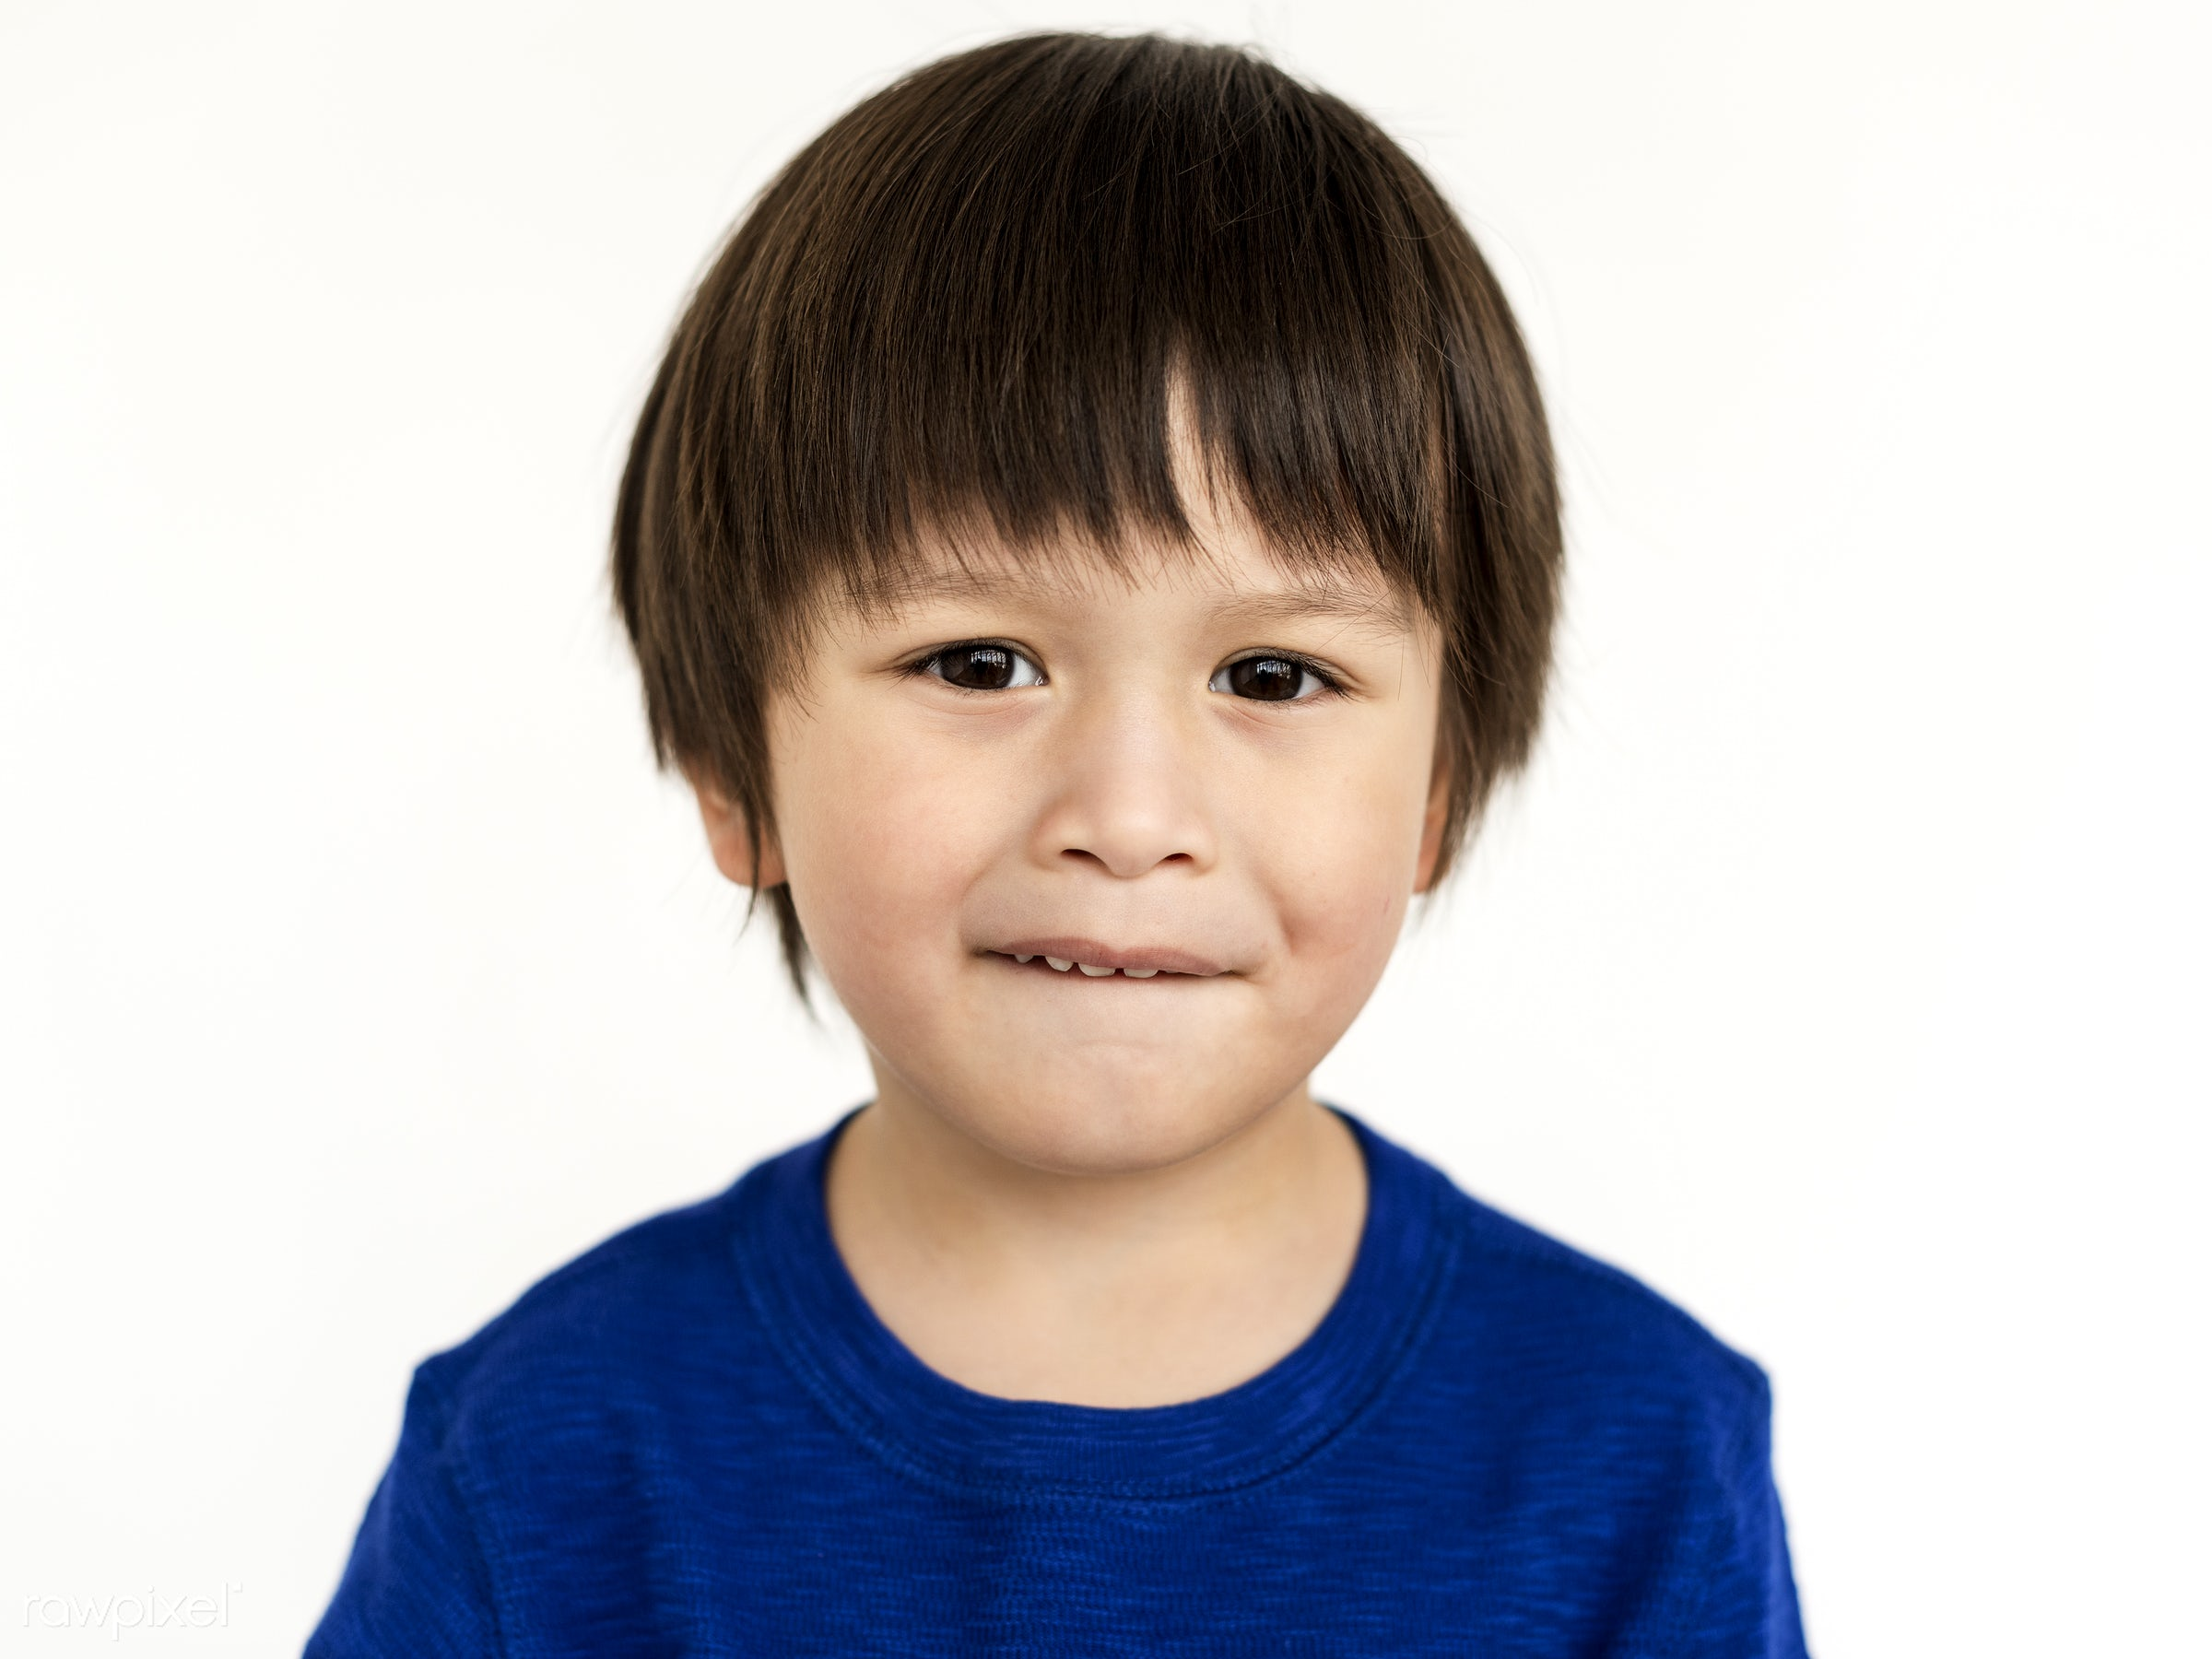 expression, studio, person, isolated on white, little, people, kid, child, asian ethnicity, casual, serious, man, isolated,...